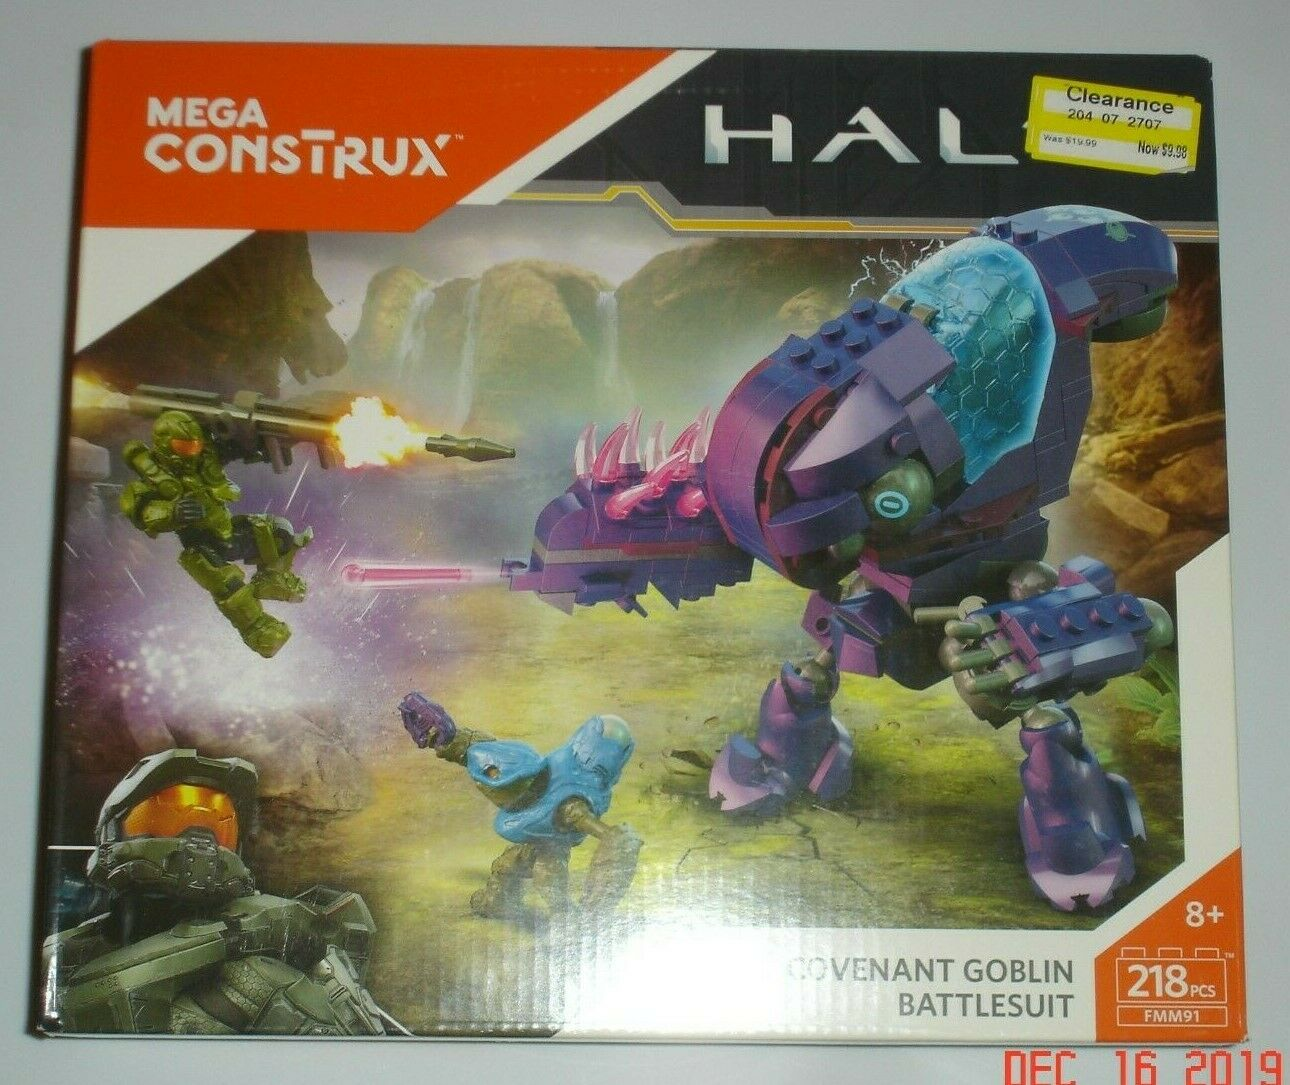 Mega Construx Halo Covenant Goblin Battlesuit 218pcs New Sealed 2017